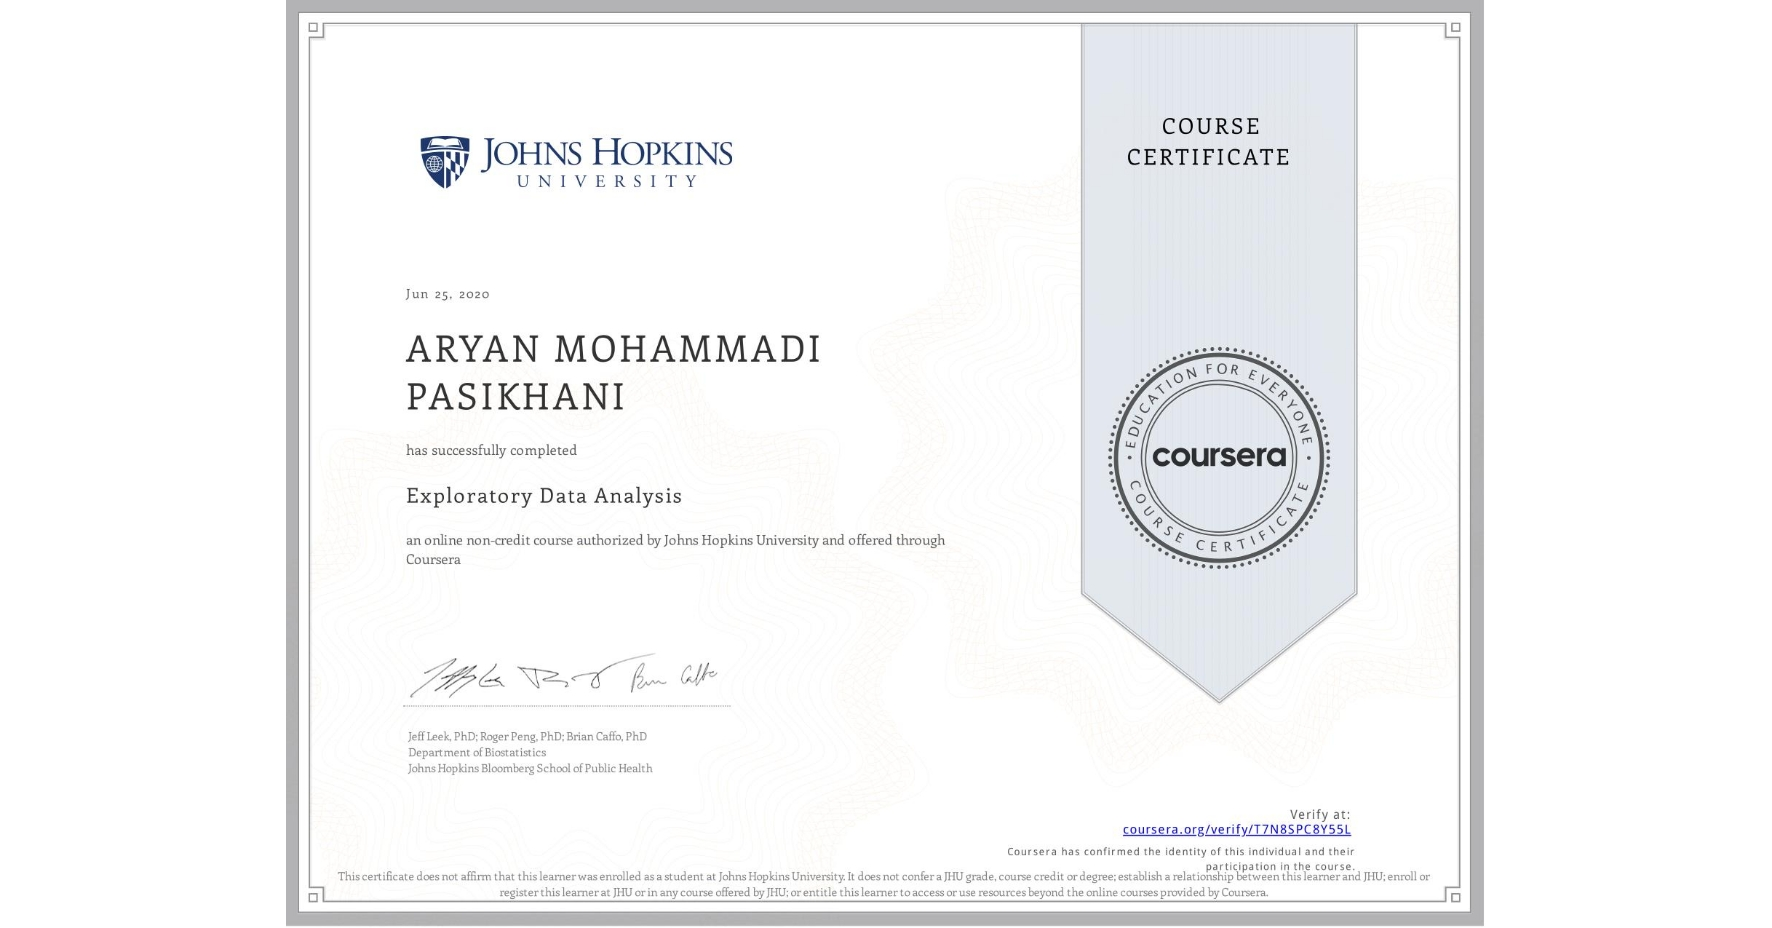 View certificate for ARYAN MOHAMMADI PASIKHANI, Exploratory Data Analysis, an online non-credit course authorized by Johns Hopkins University and offered through Coursera